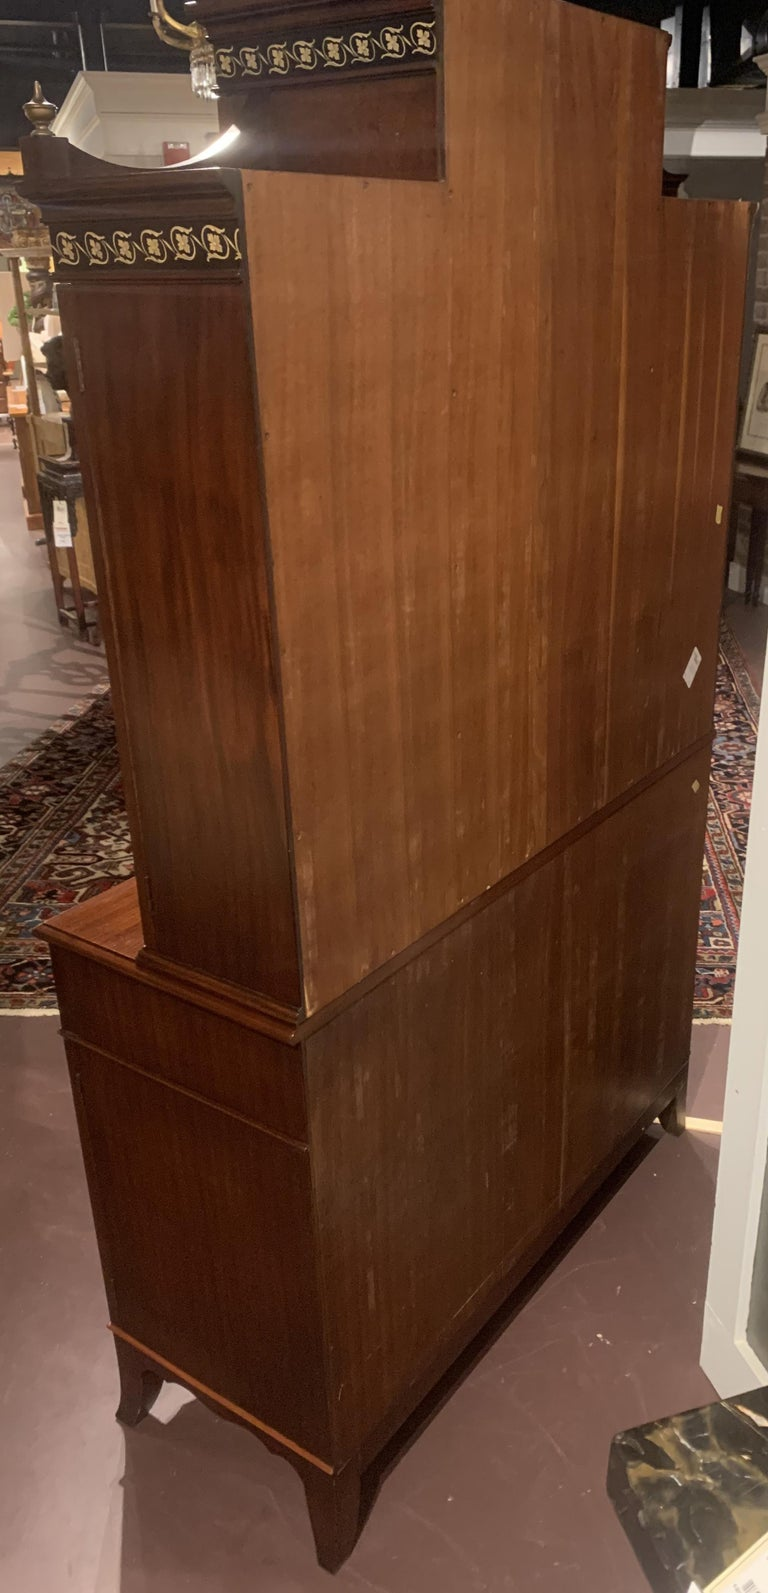 Diminutive Adam Style Breakfront Bookcase or China Cabinet by F&G Furniture Co For Sale 8